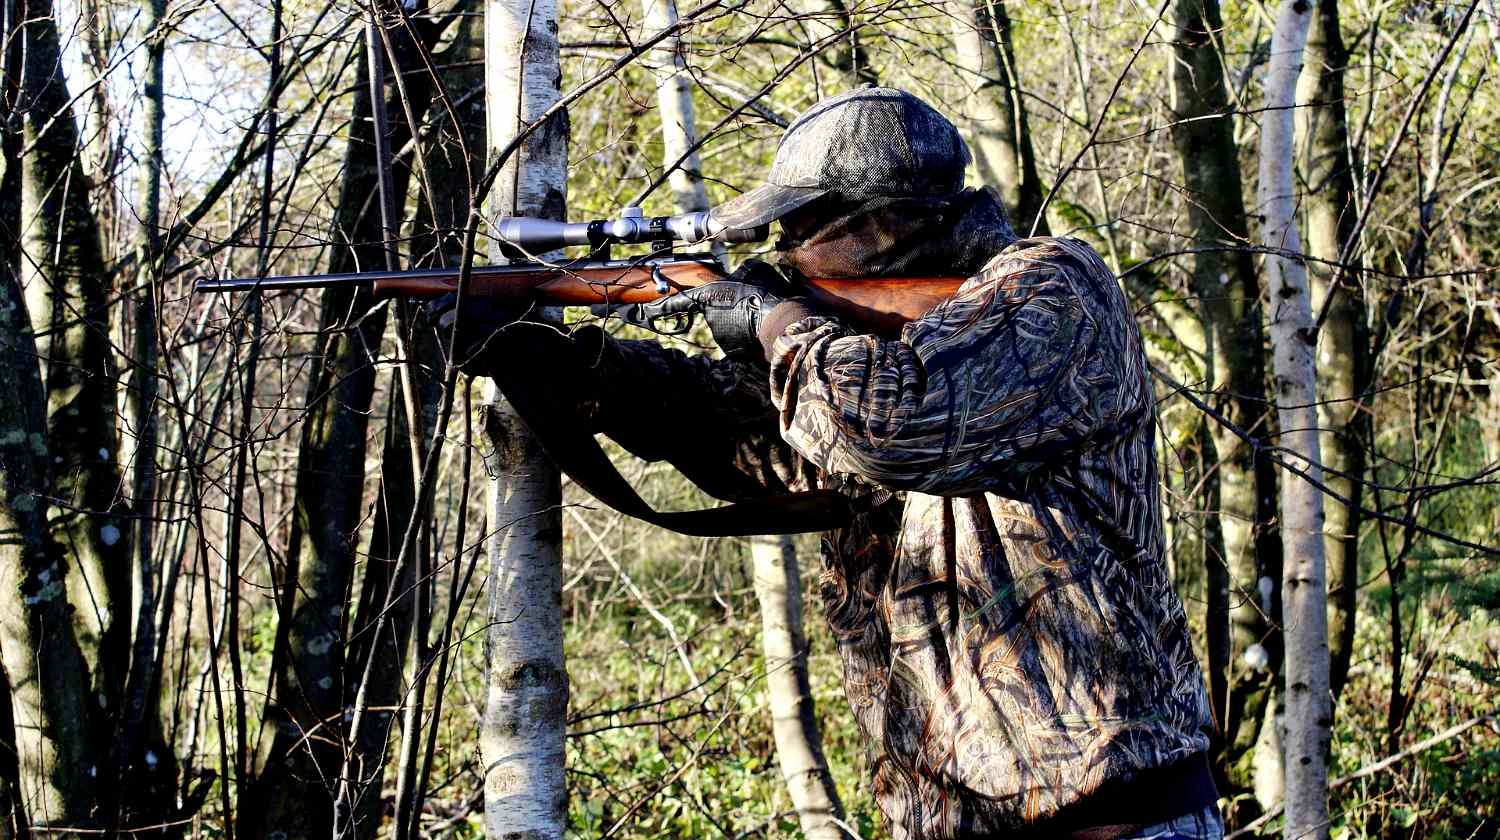 Feature | Hunter with his rifle in the forest | AR-7 | Best Survival Gun?